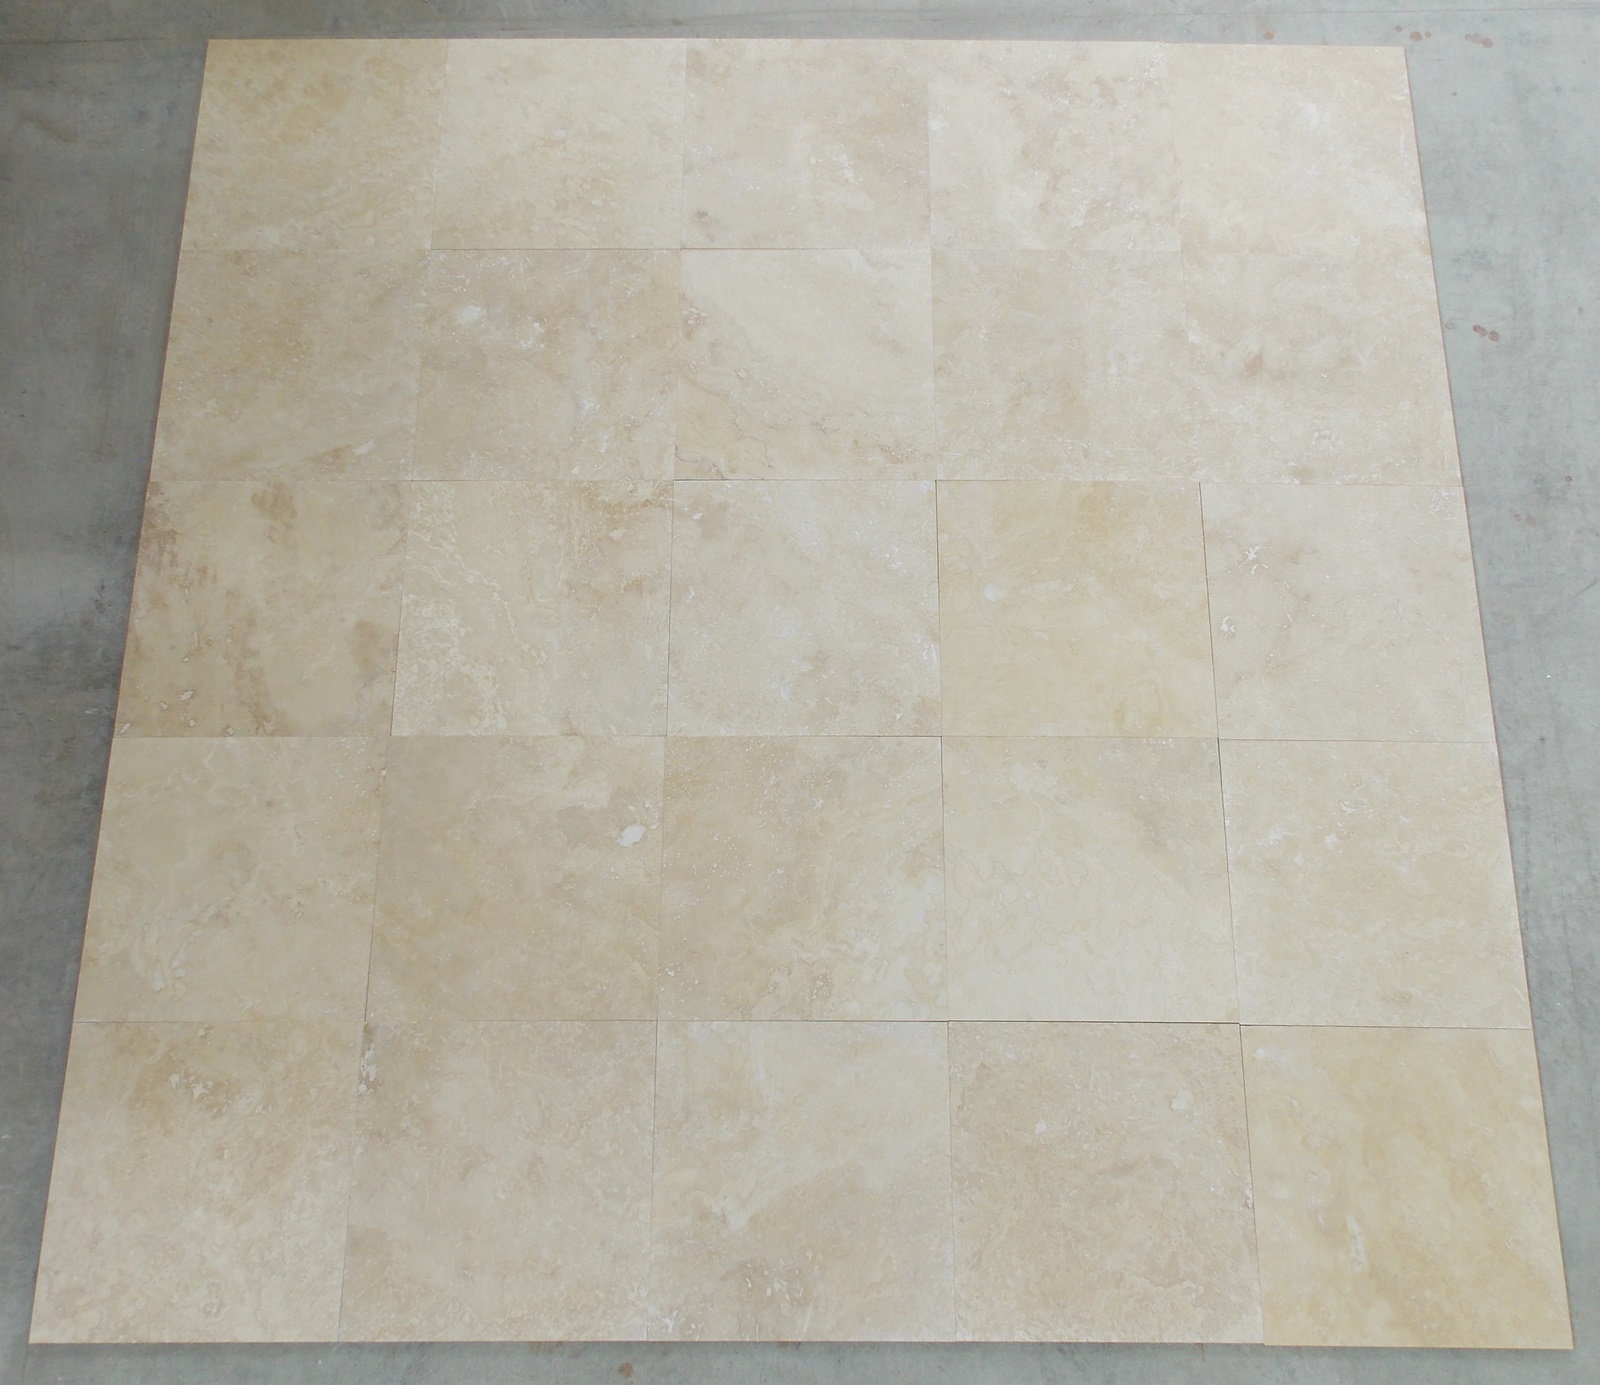 EXTRA LIGHT HONED AND FILLED TRAVERTINE TILES